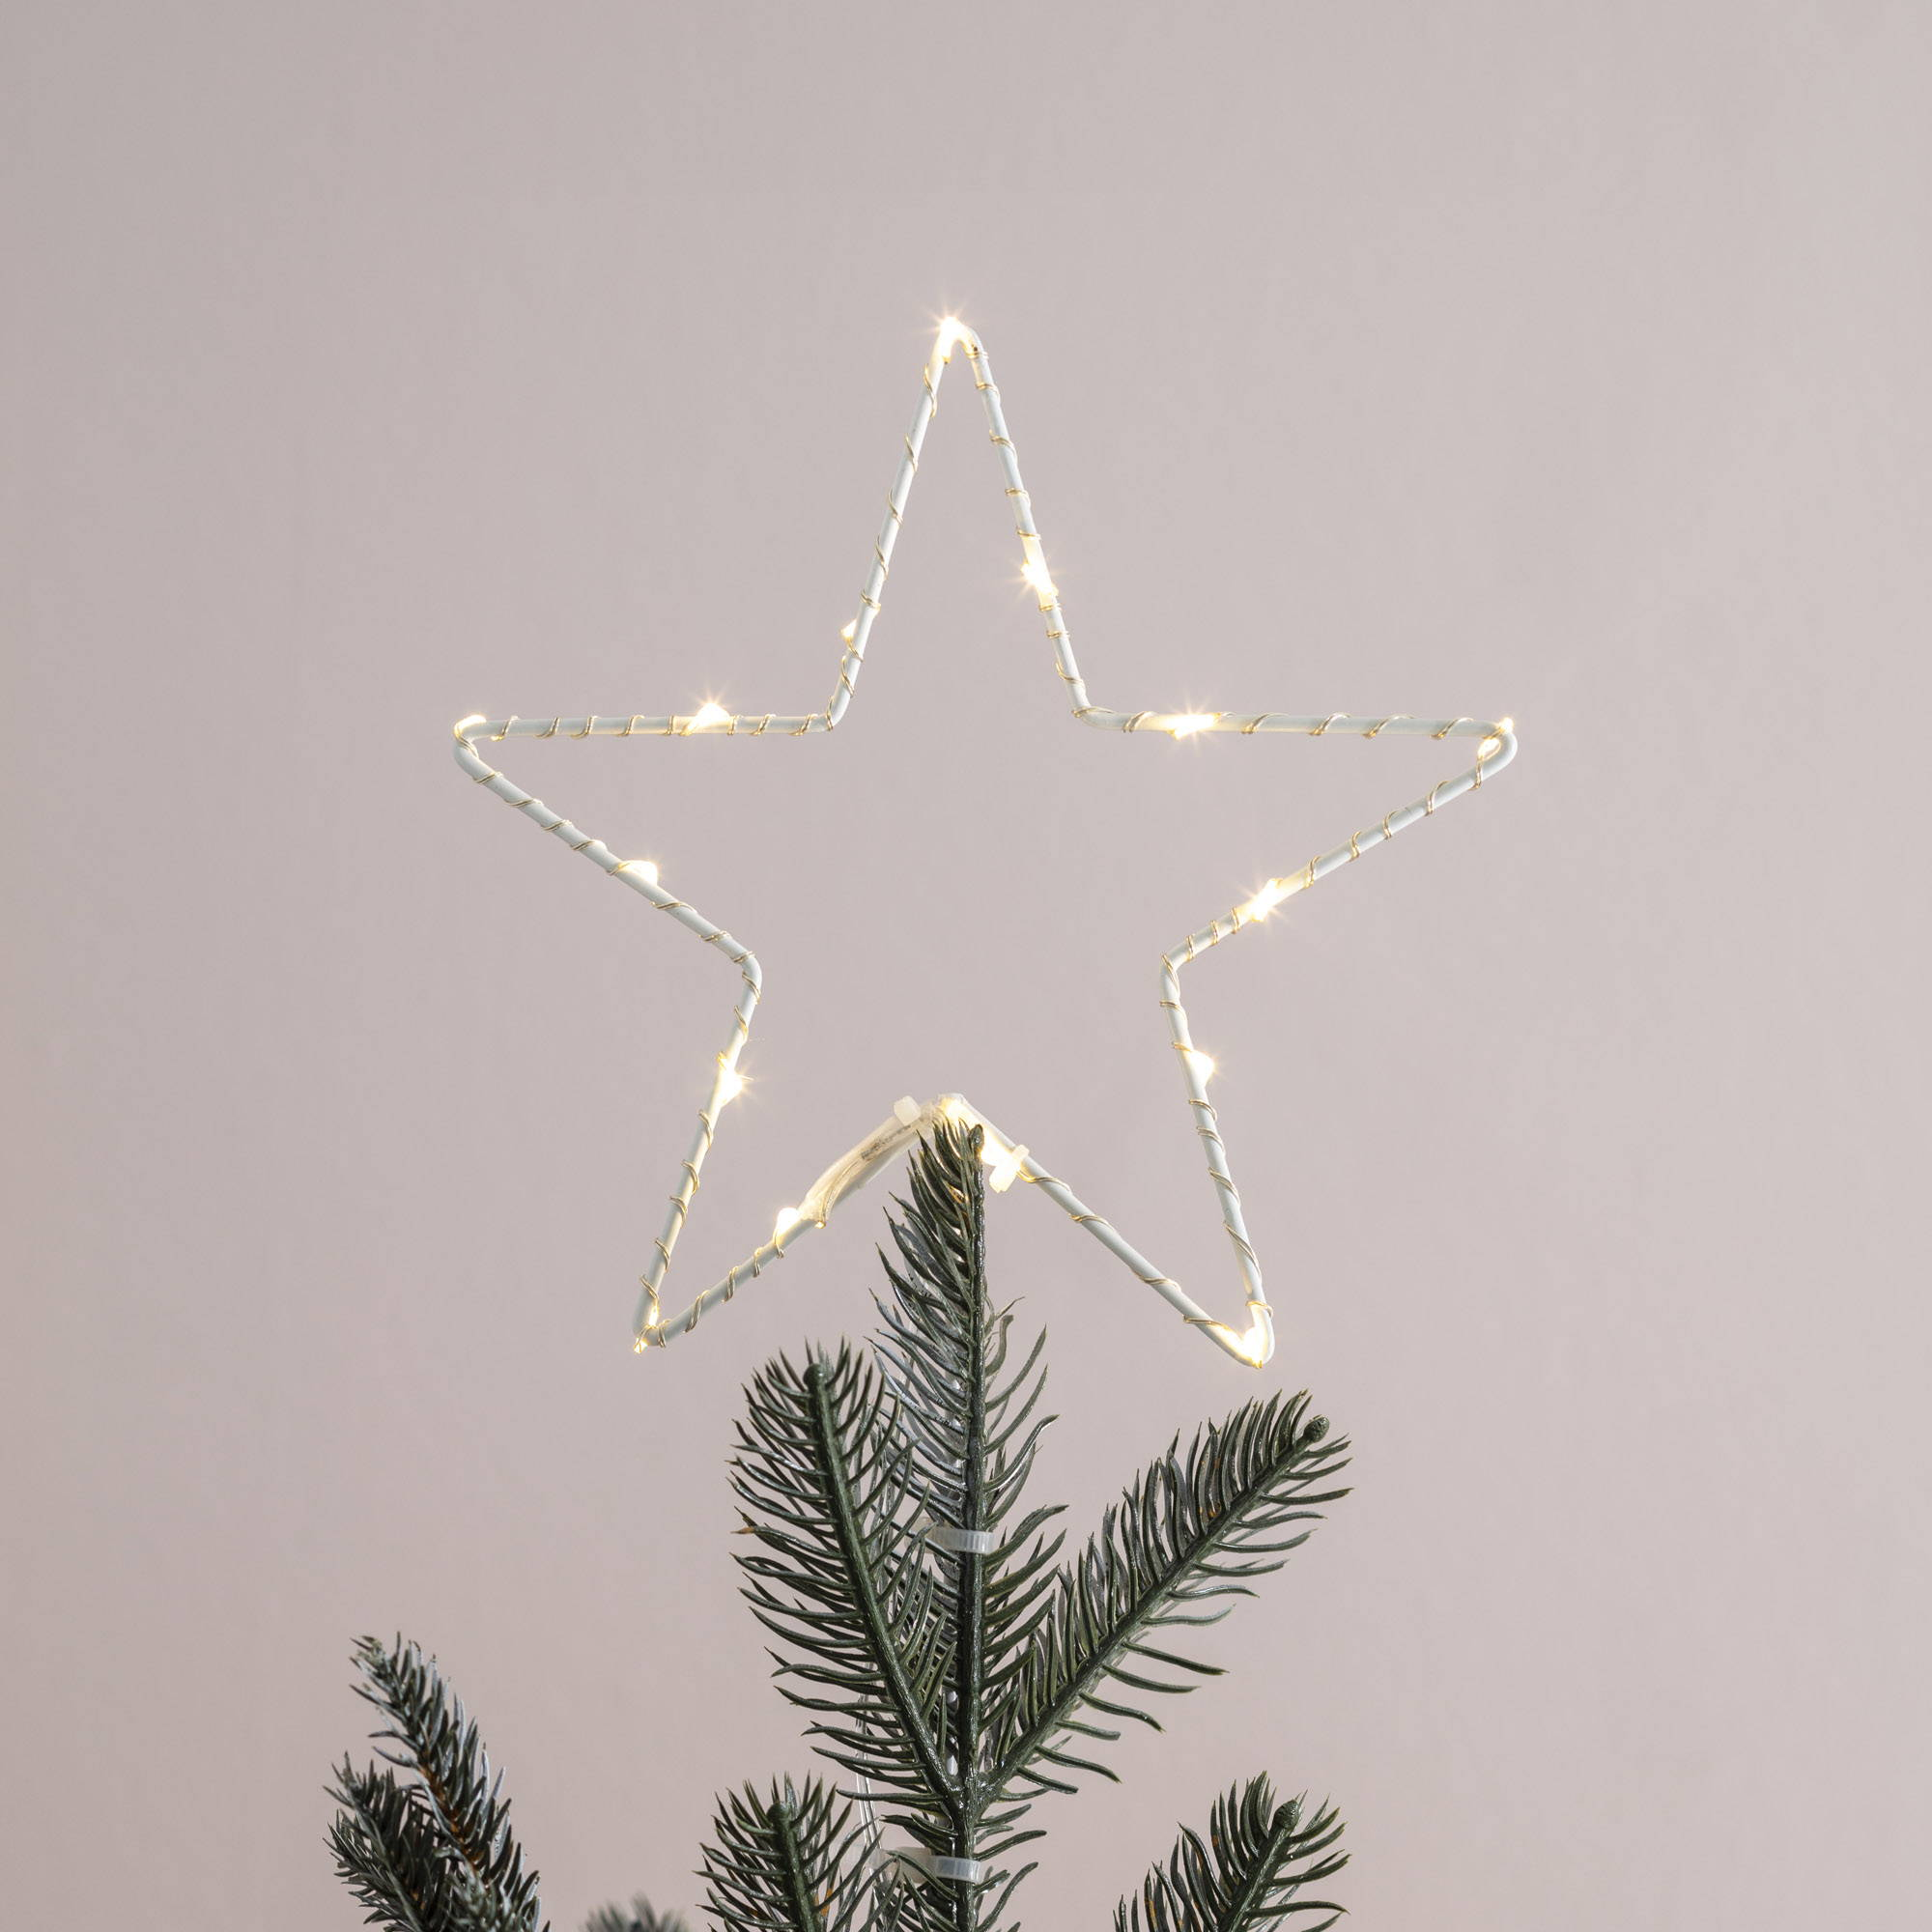 LED Star light Christmas tree topper